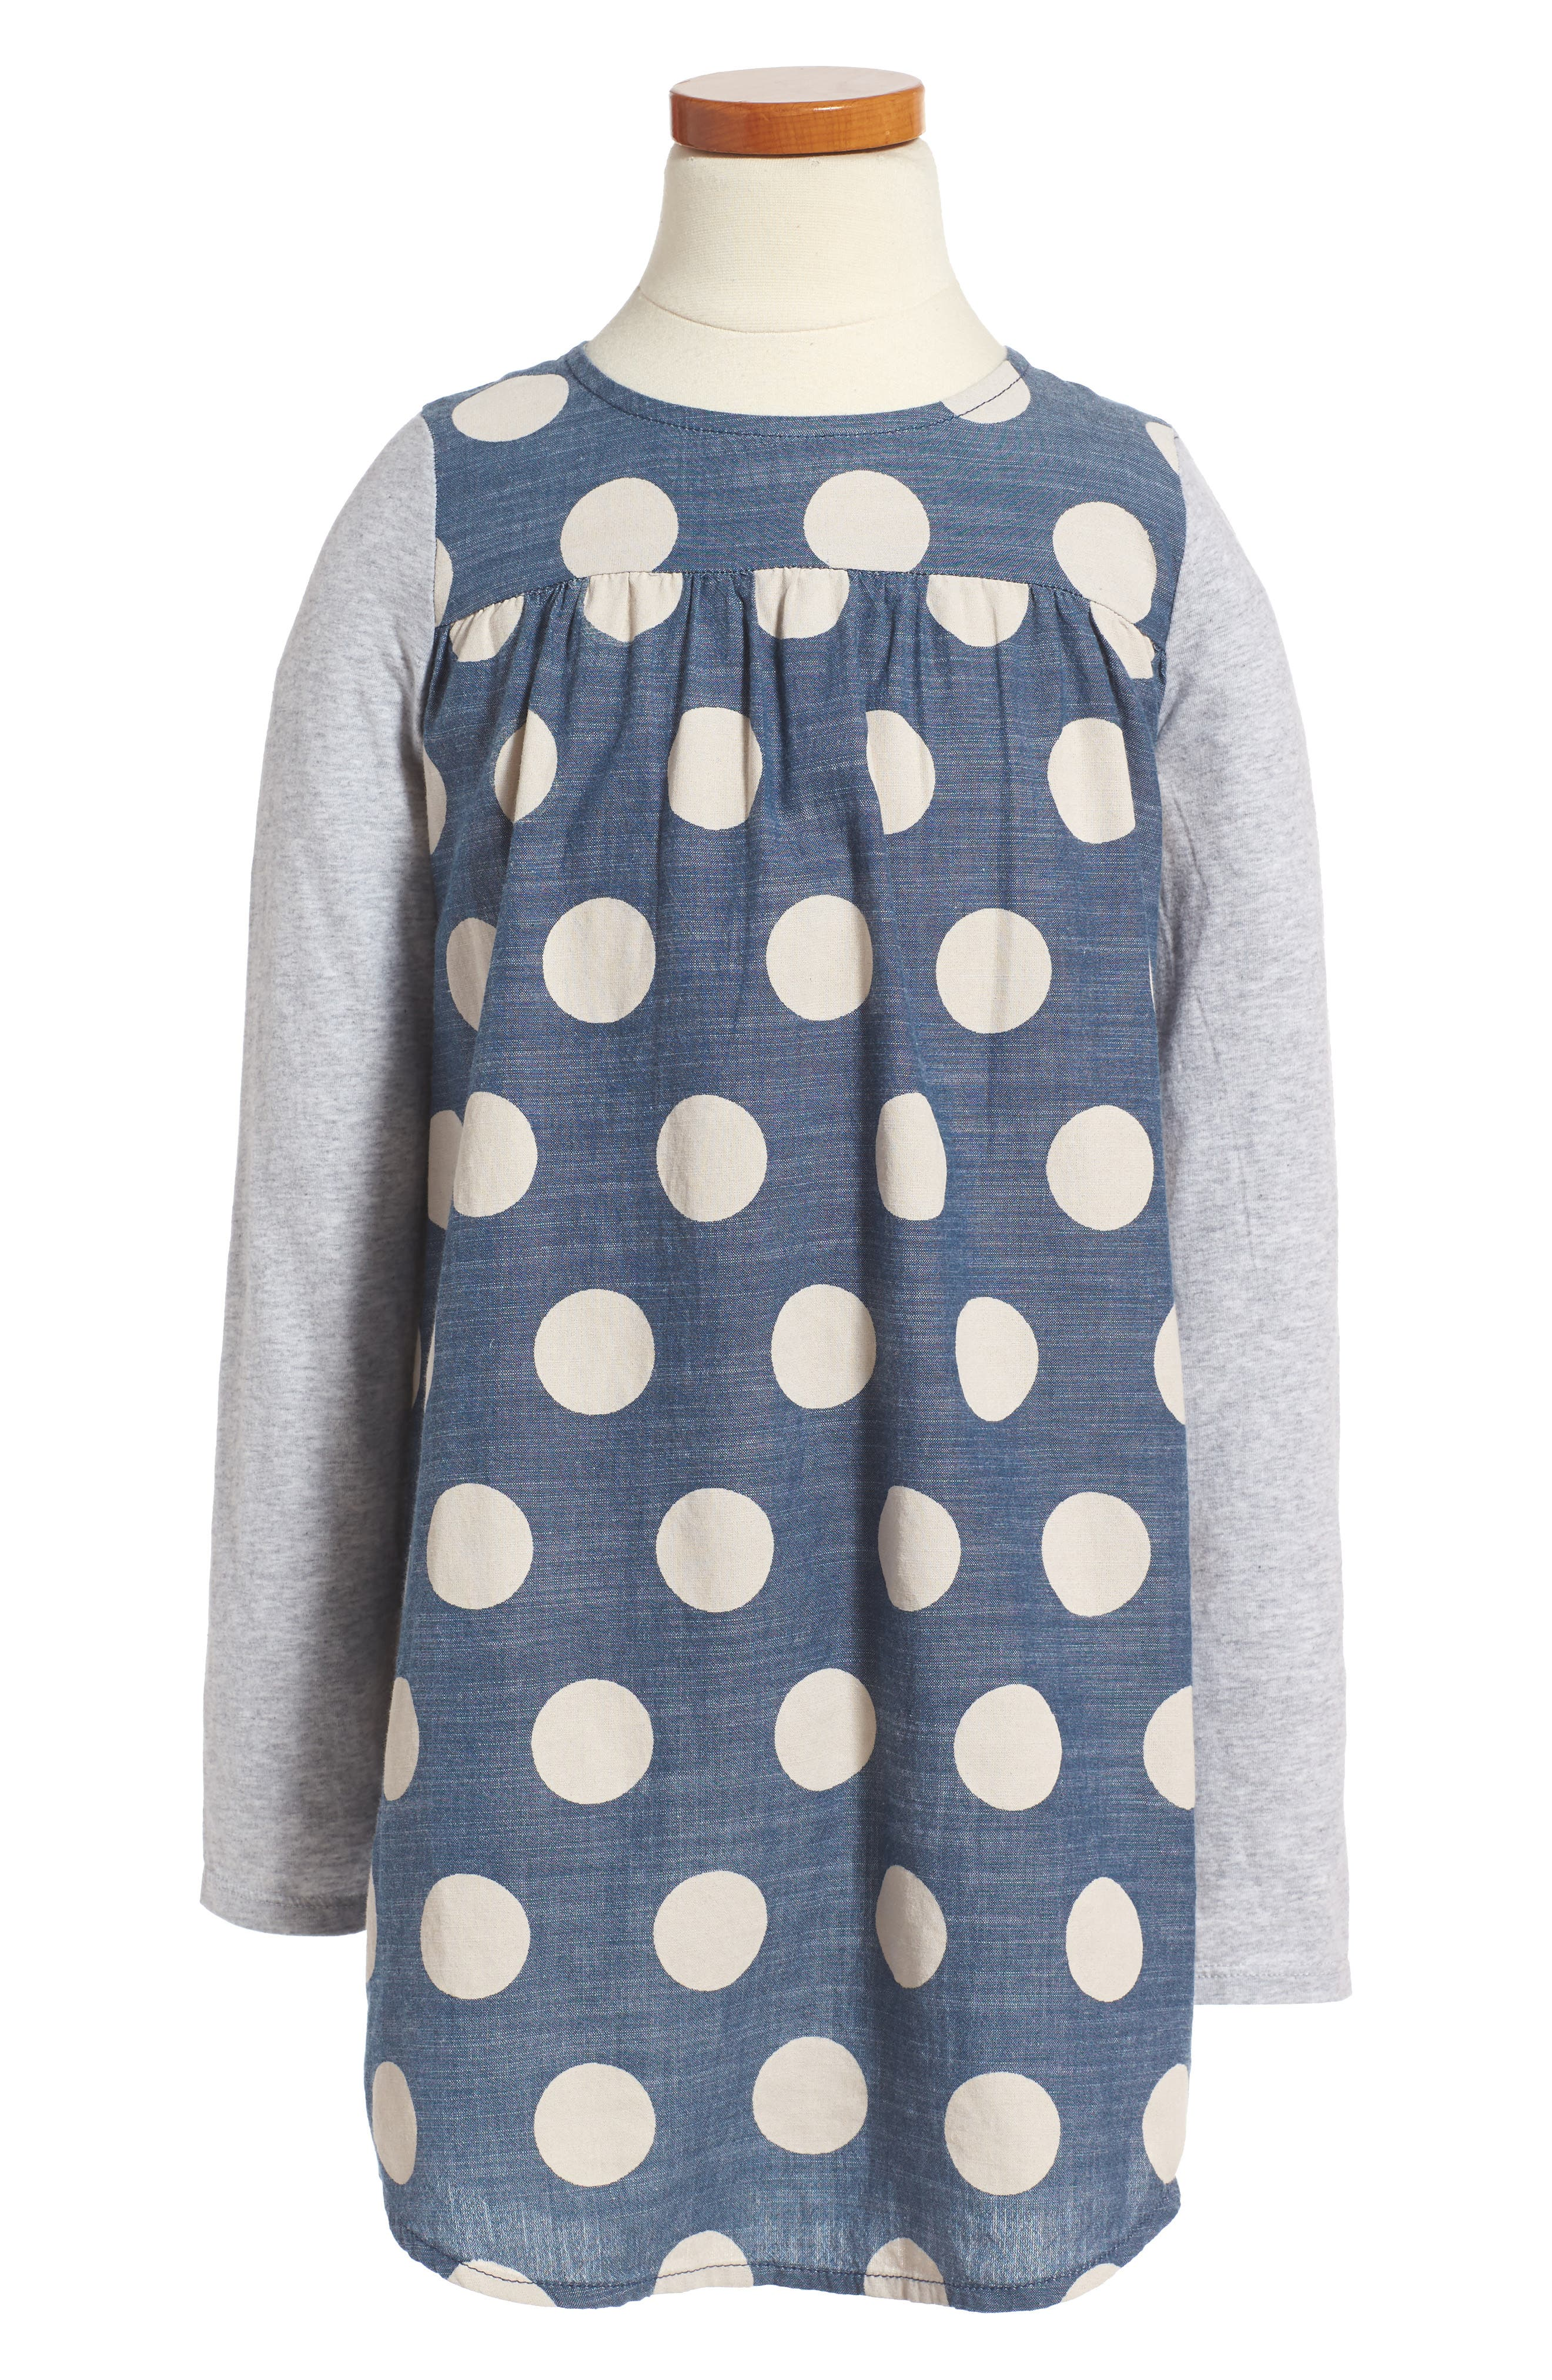 Tucker + Tate Big Dot Woven Dress (Toddler Girls, Little Girls & Big Girls)